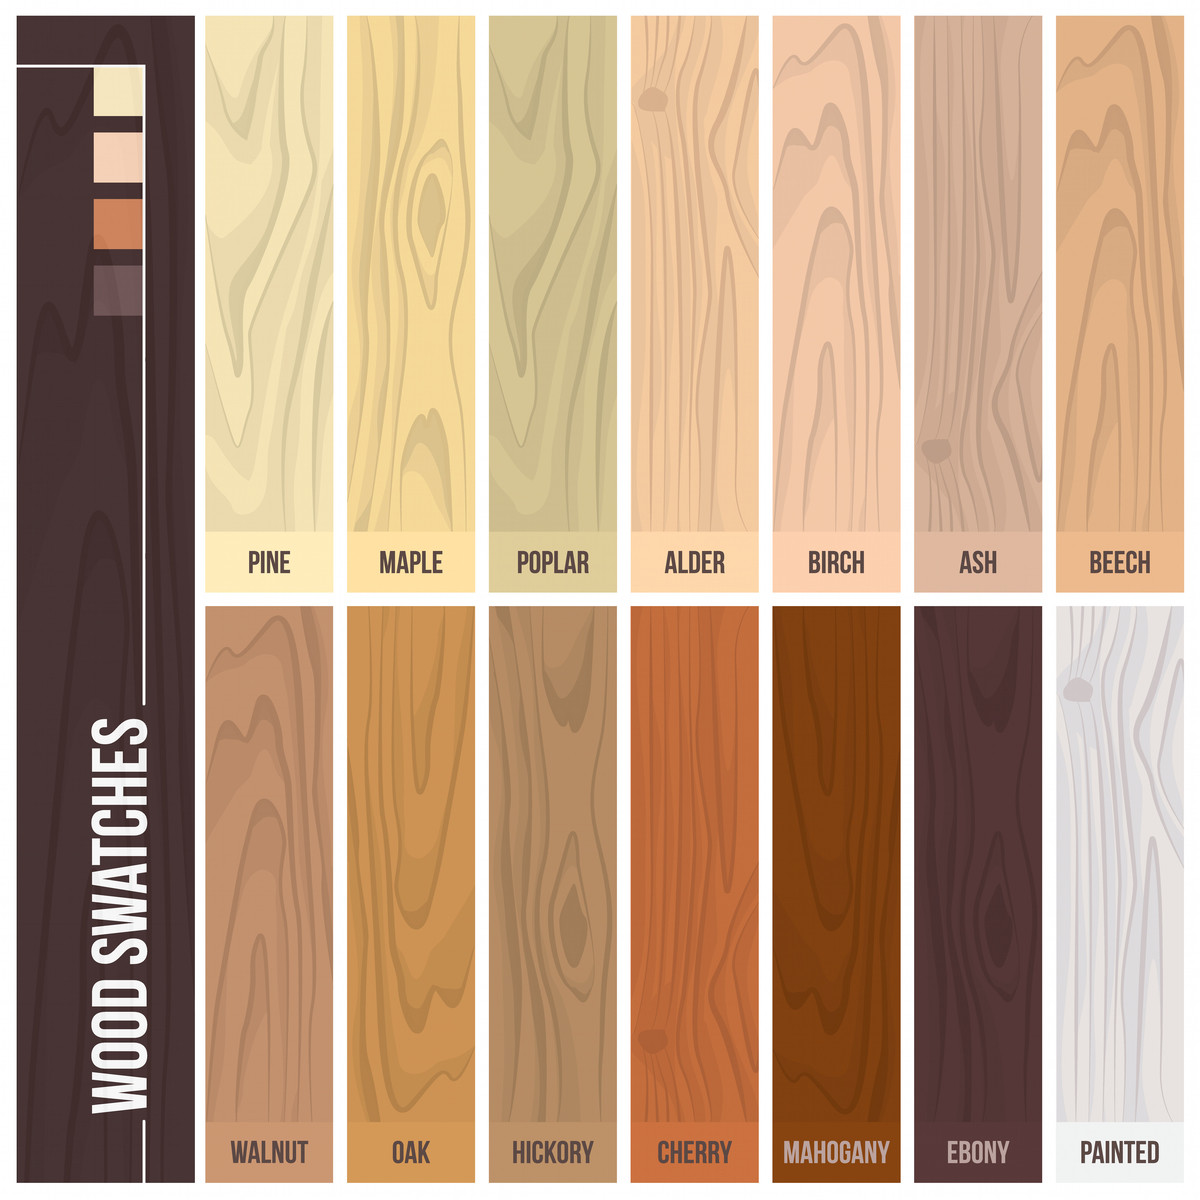 cheap red oak hardwood flooring of 12 types of hardwood flooring species styles edging dimensions in types of hardwood flooring illustrated guide